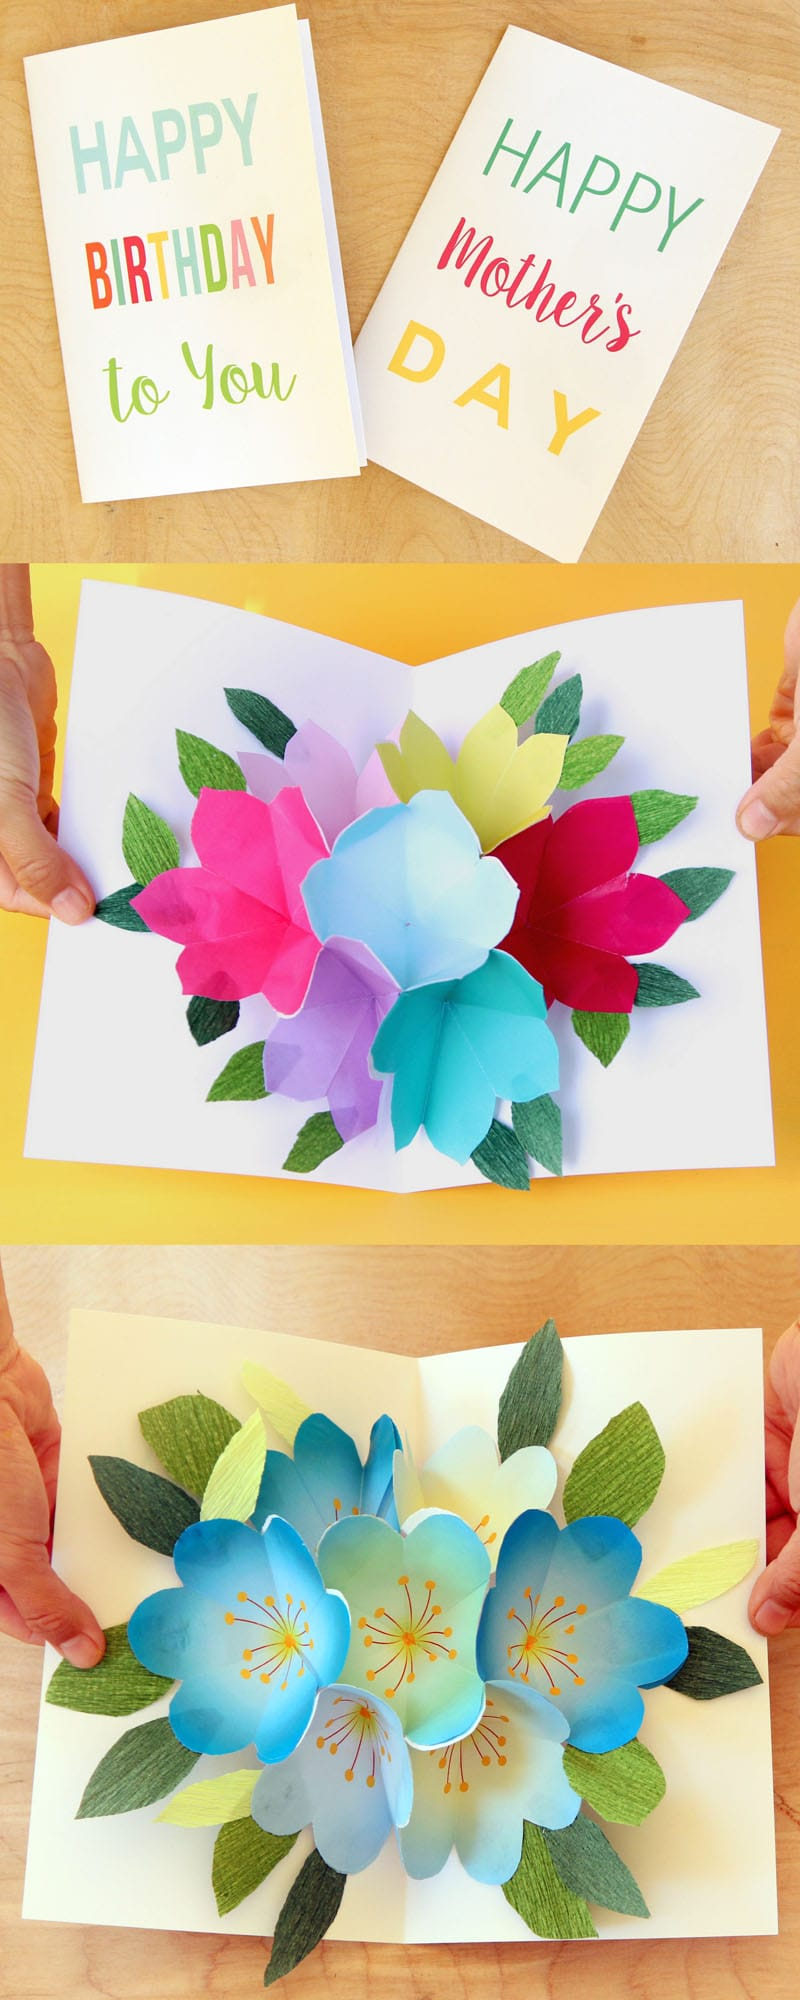 Free printable happy birthday card with pop up bouquet a piece of you can make this easy and free printable birthday card in less than an hour oh and the best part a big bouquet pops right out when your loved one opens kristyandbryce Choice Image